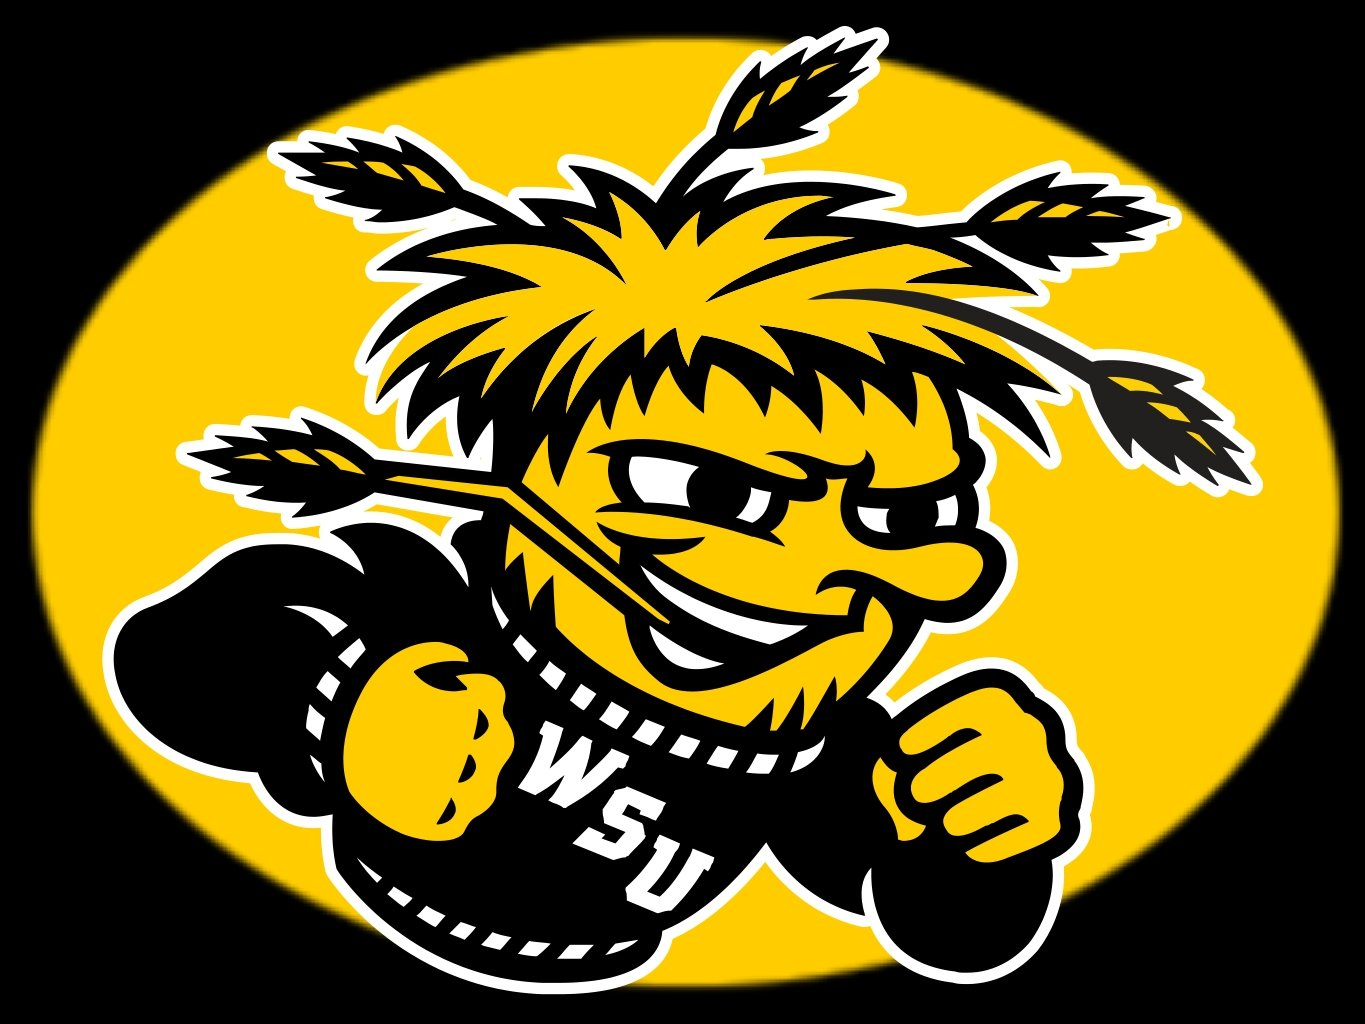 Wichita State University is under fire from the NCAA for violations involving the school's baseball team.